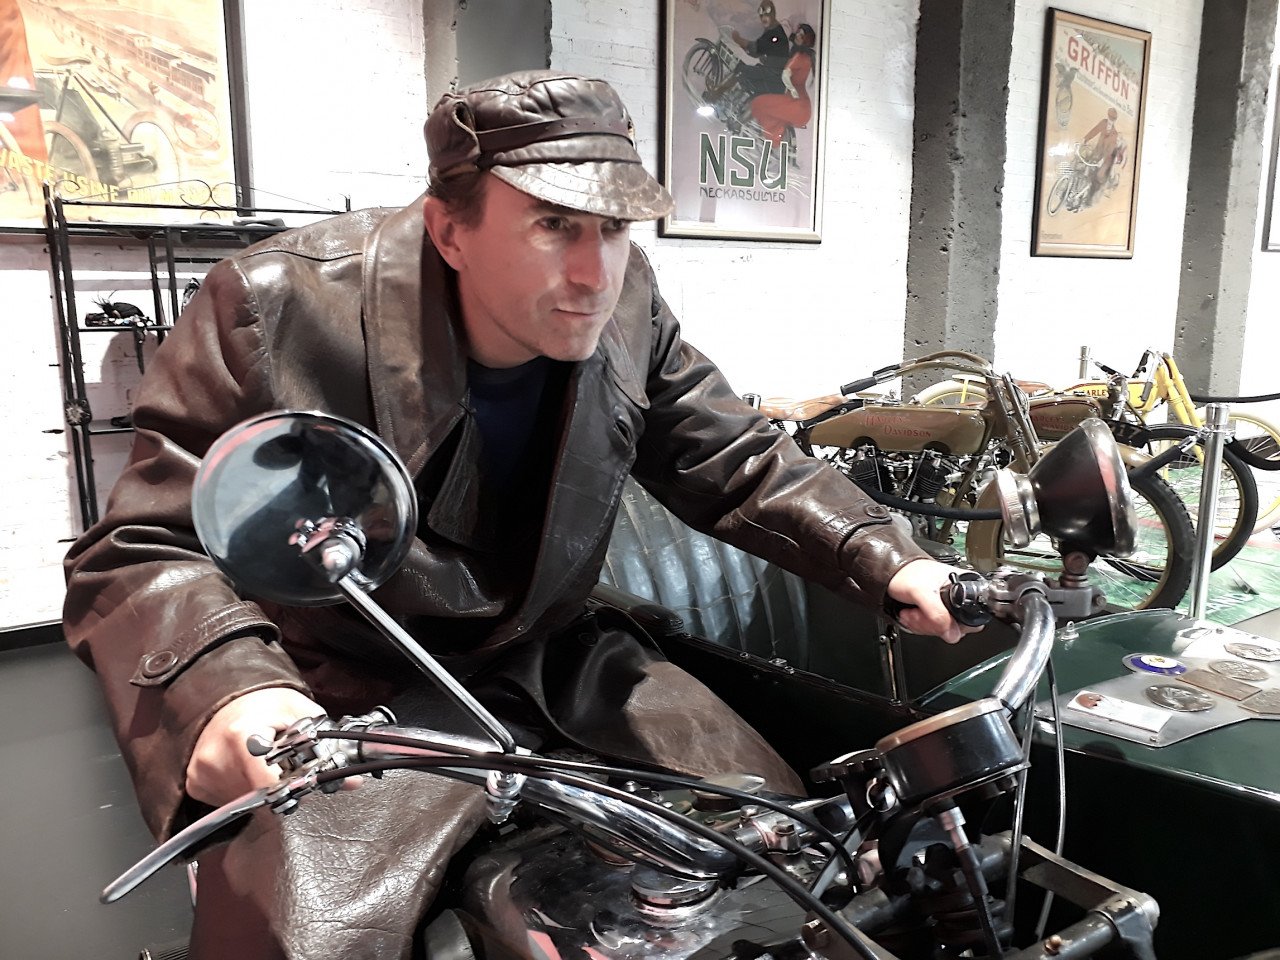 Stefan channelling the spirit of Invercargill at the Motorcycle Mecca.